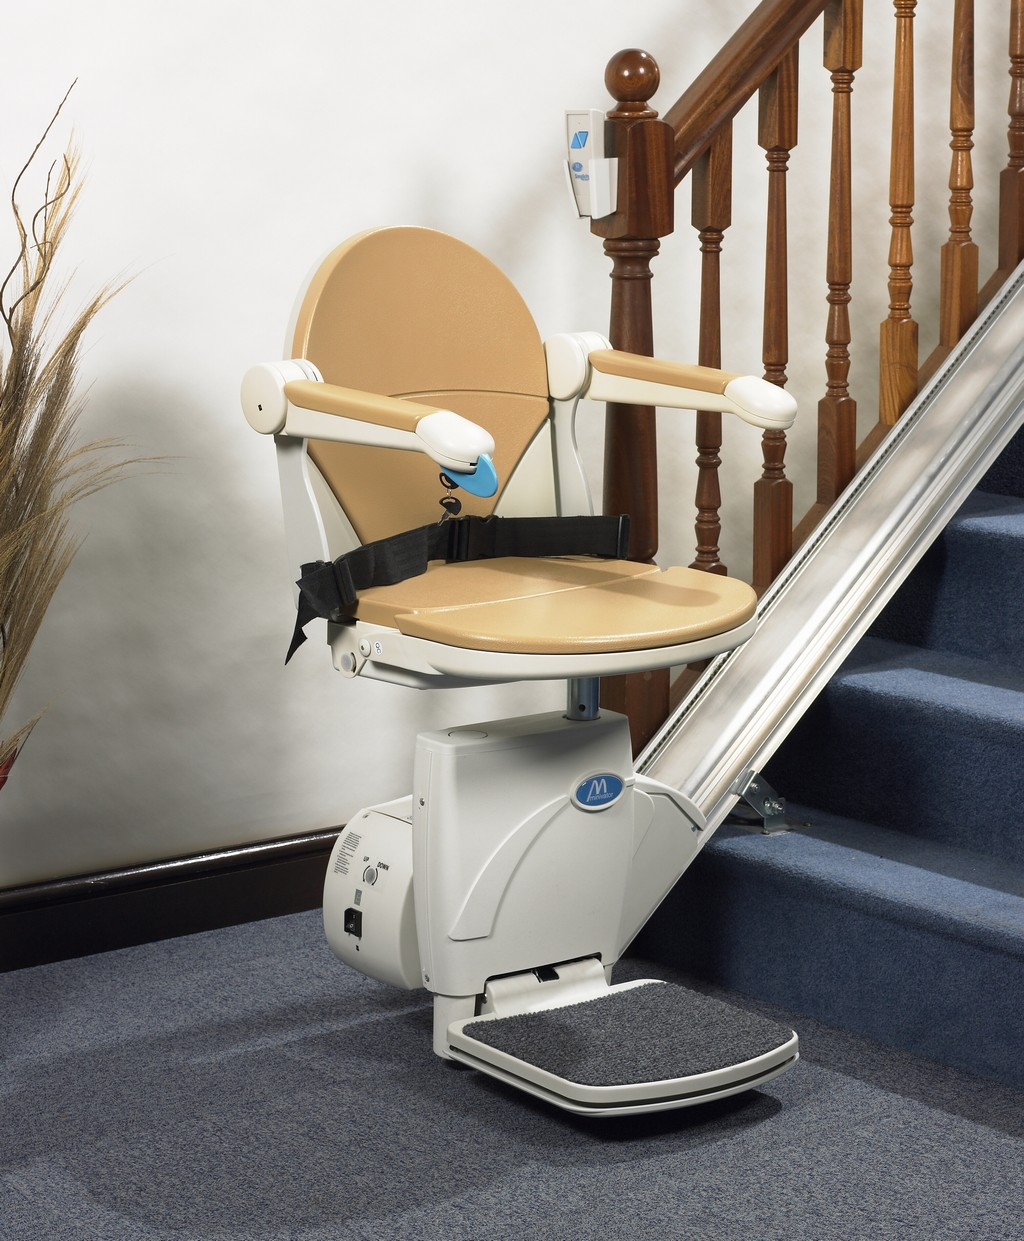 used acorn chair lifts for stairs